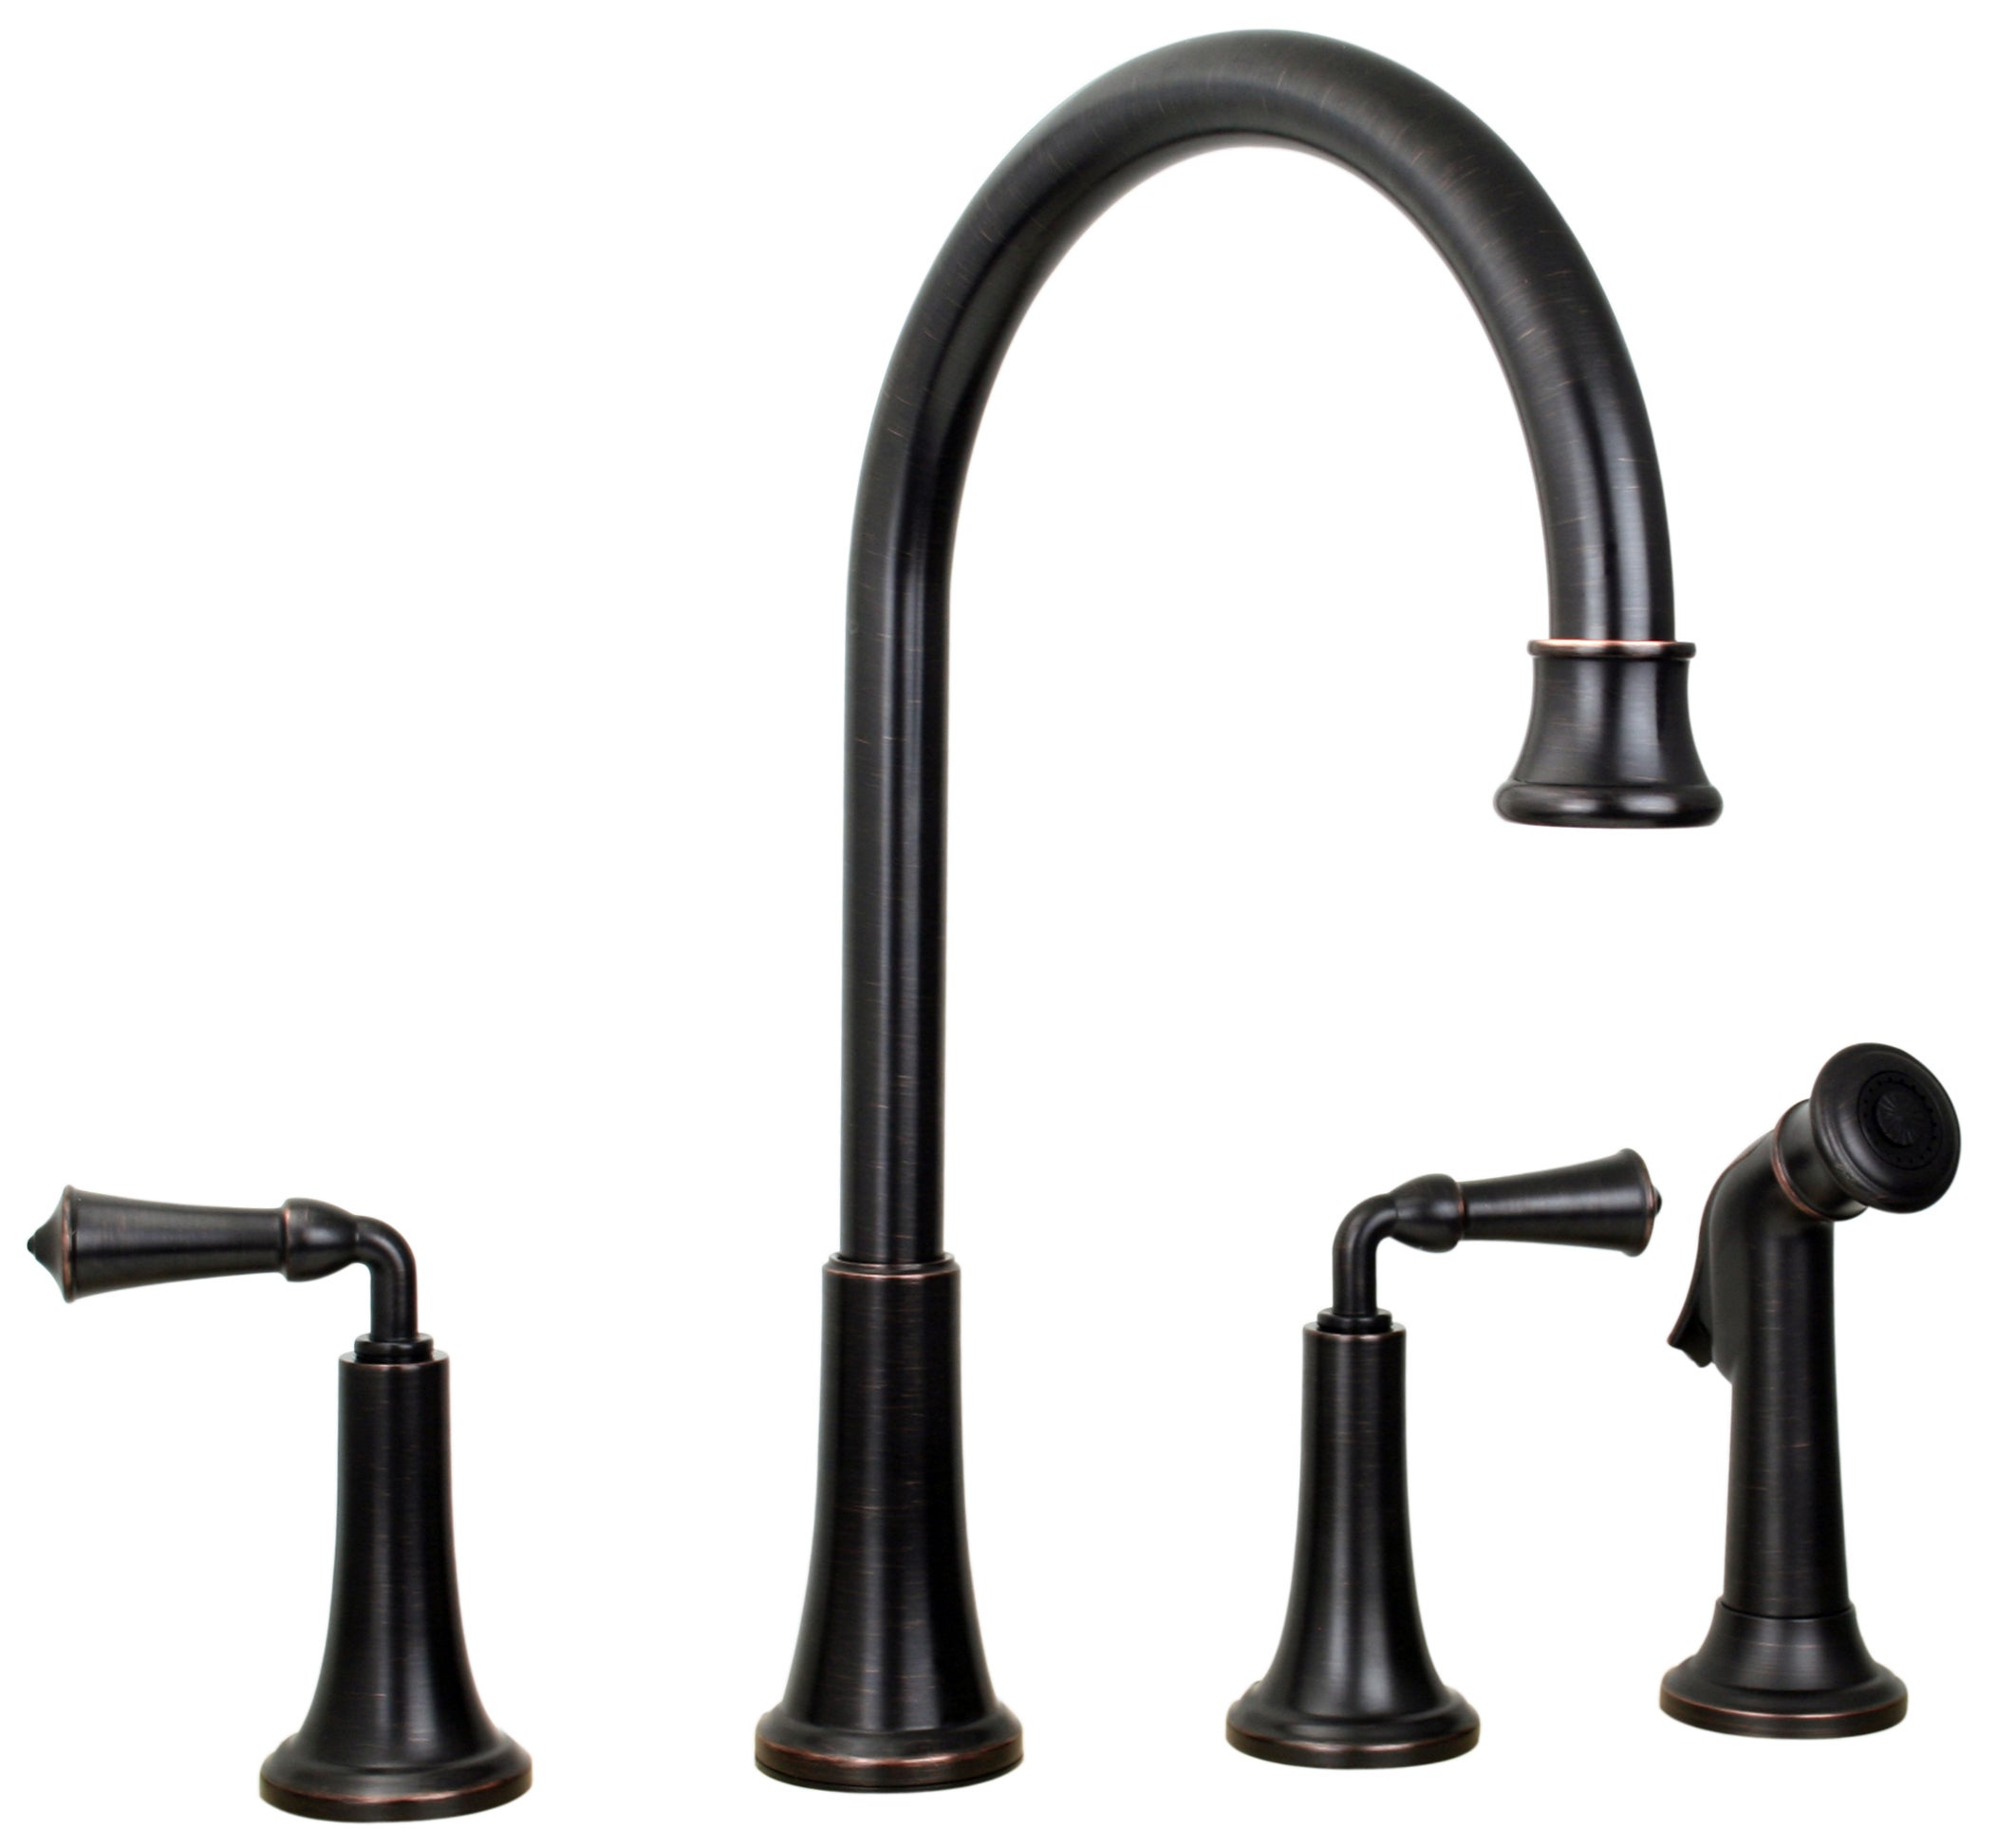 Pfister Kitchen Faucet Price Pfister Bellport Tuscan Bronze Two Handle Kitchen Faucet